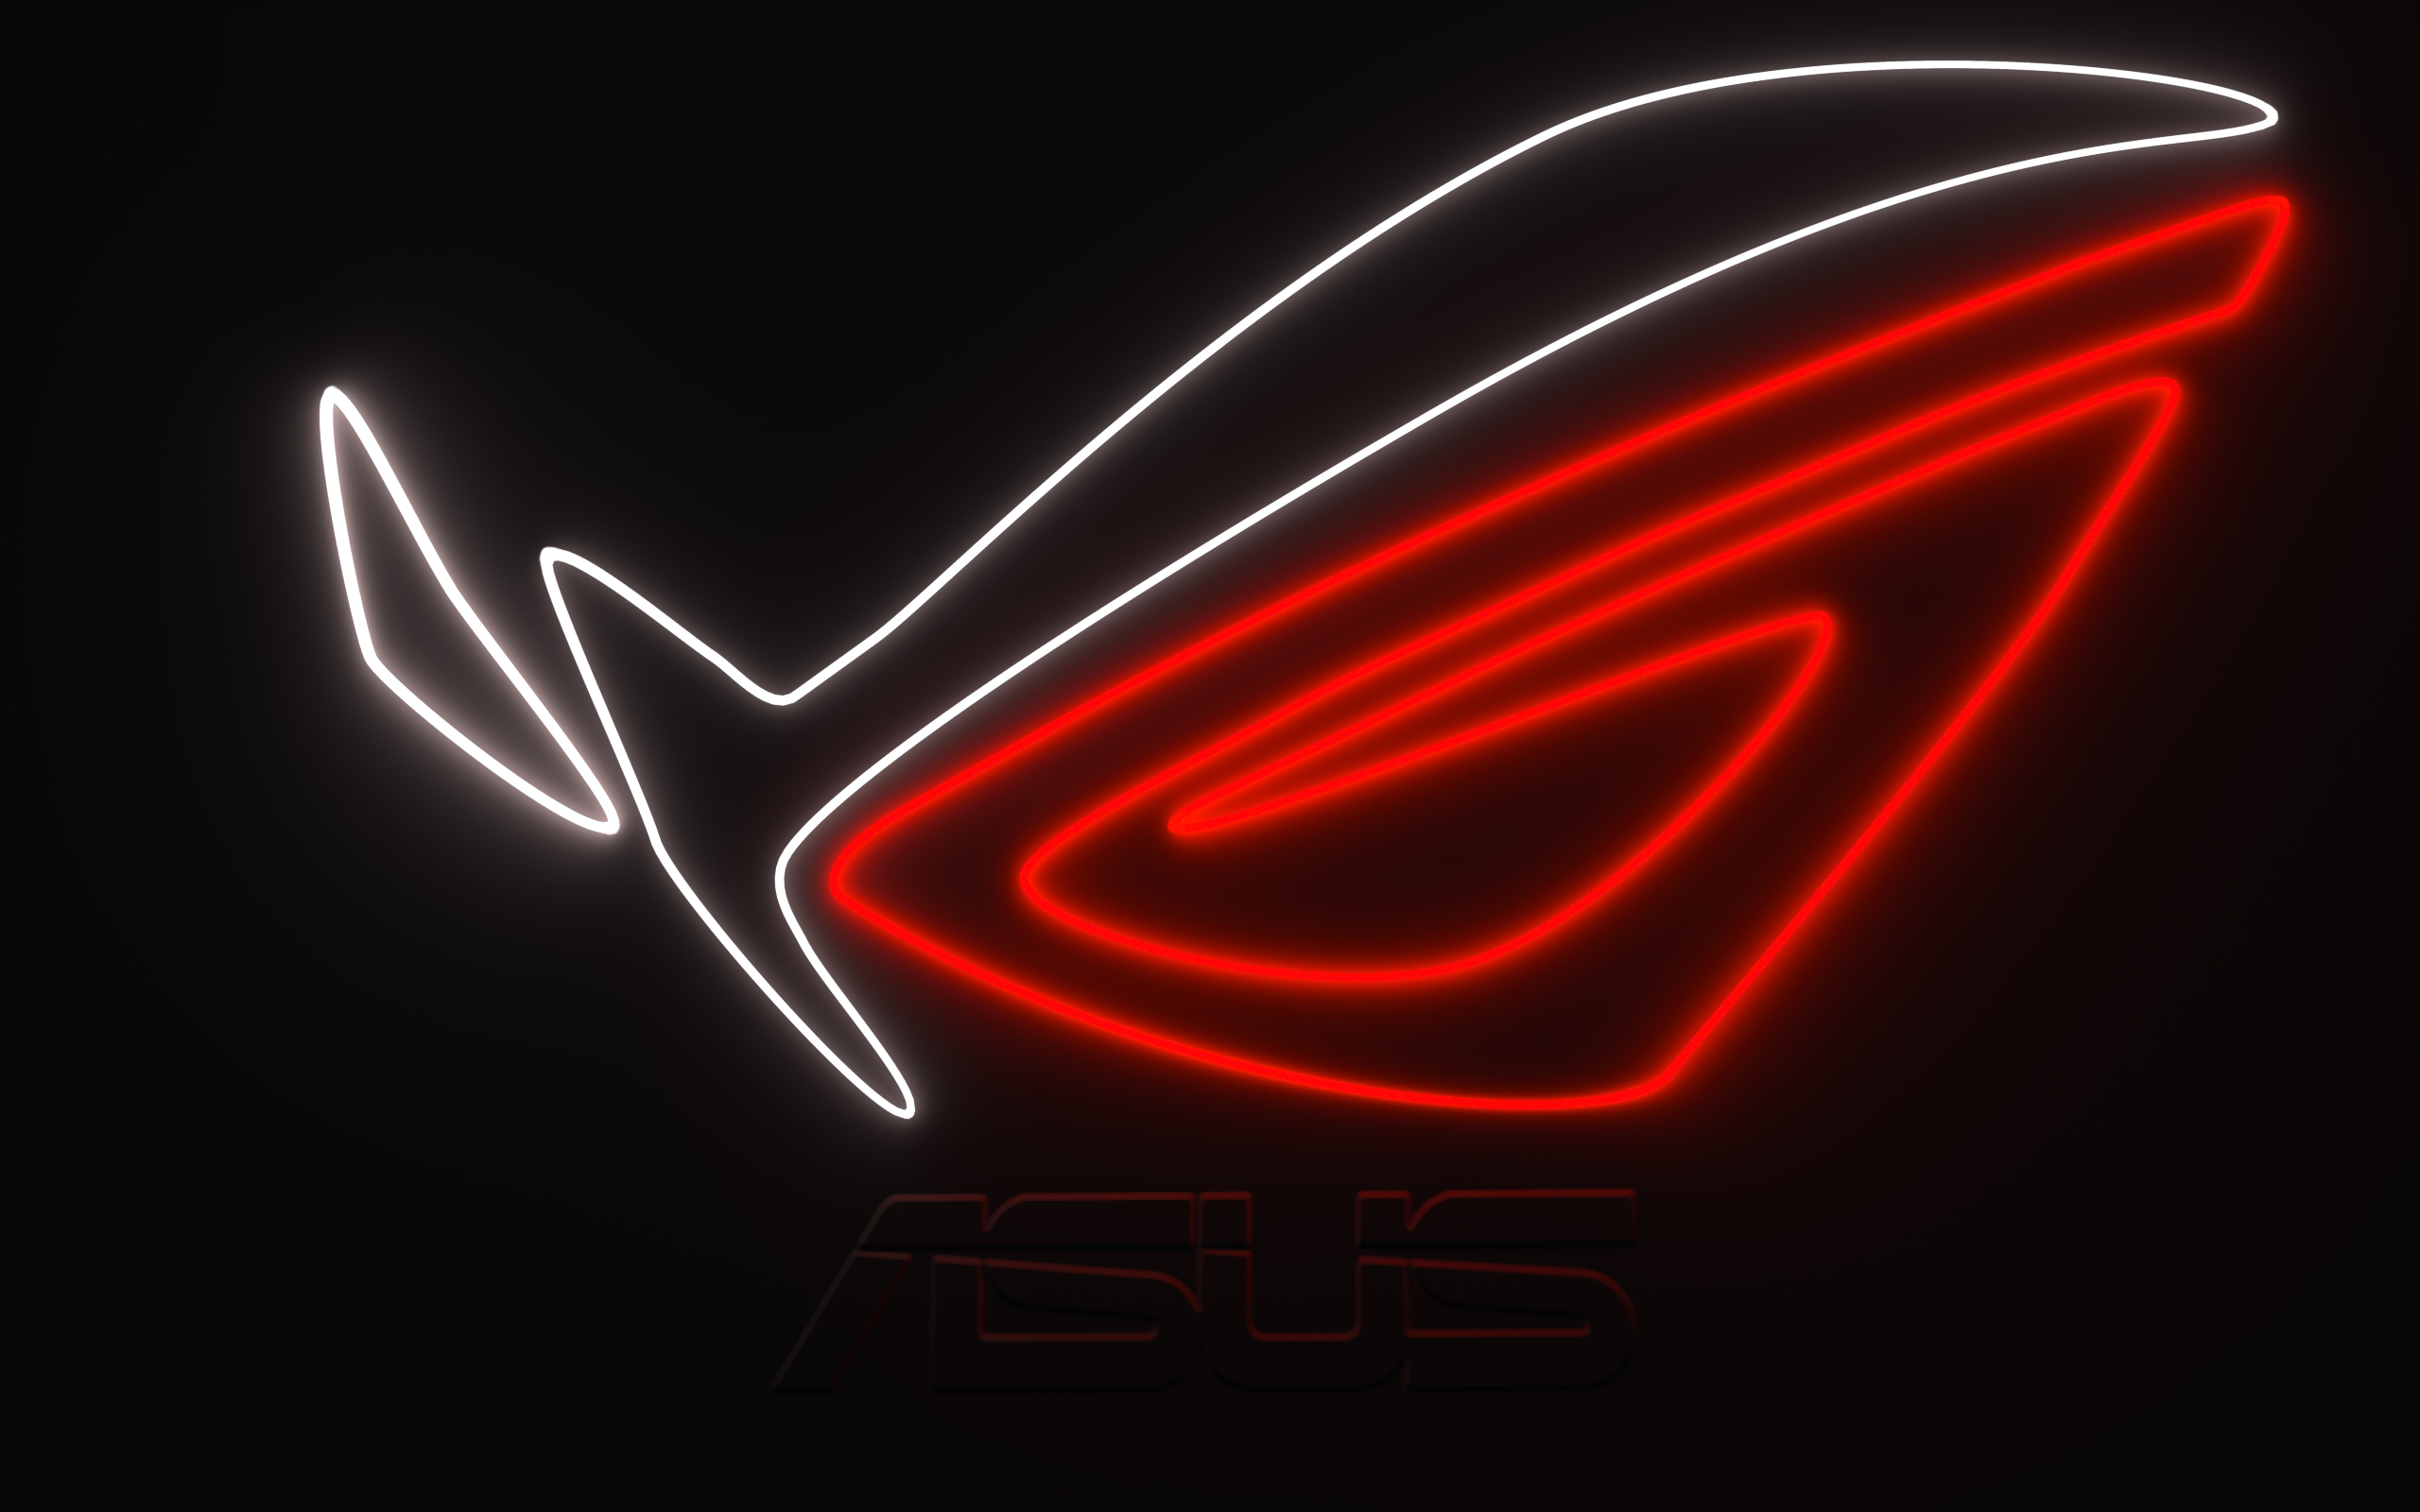 2013 rog wallpaper competition vote for your favorite